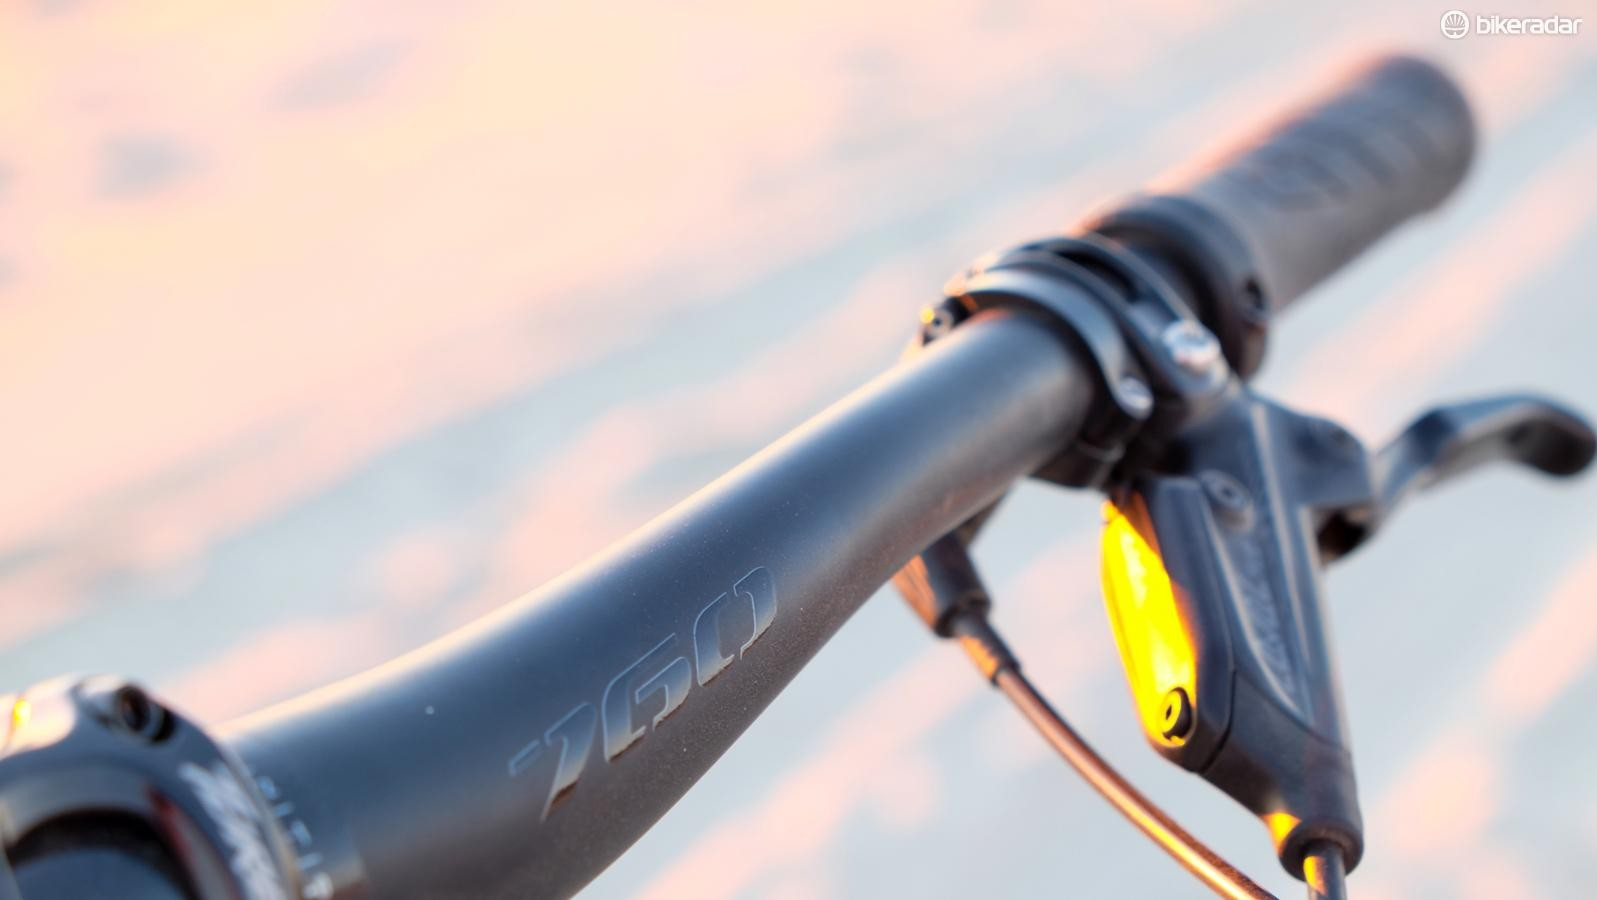 Yeti now has its own line of 35mm handlebars. A 760mm bar steers the SB100